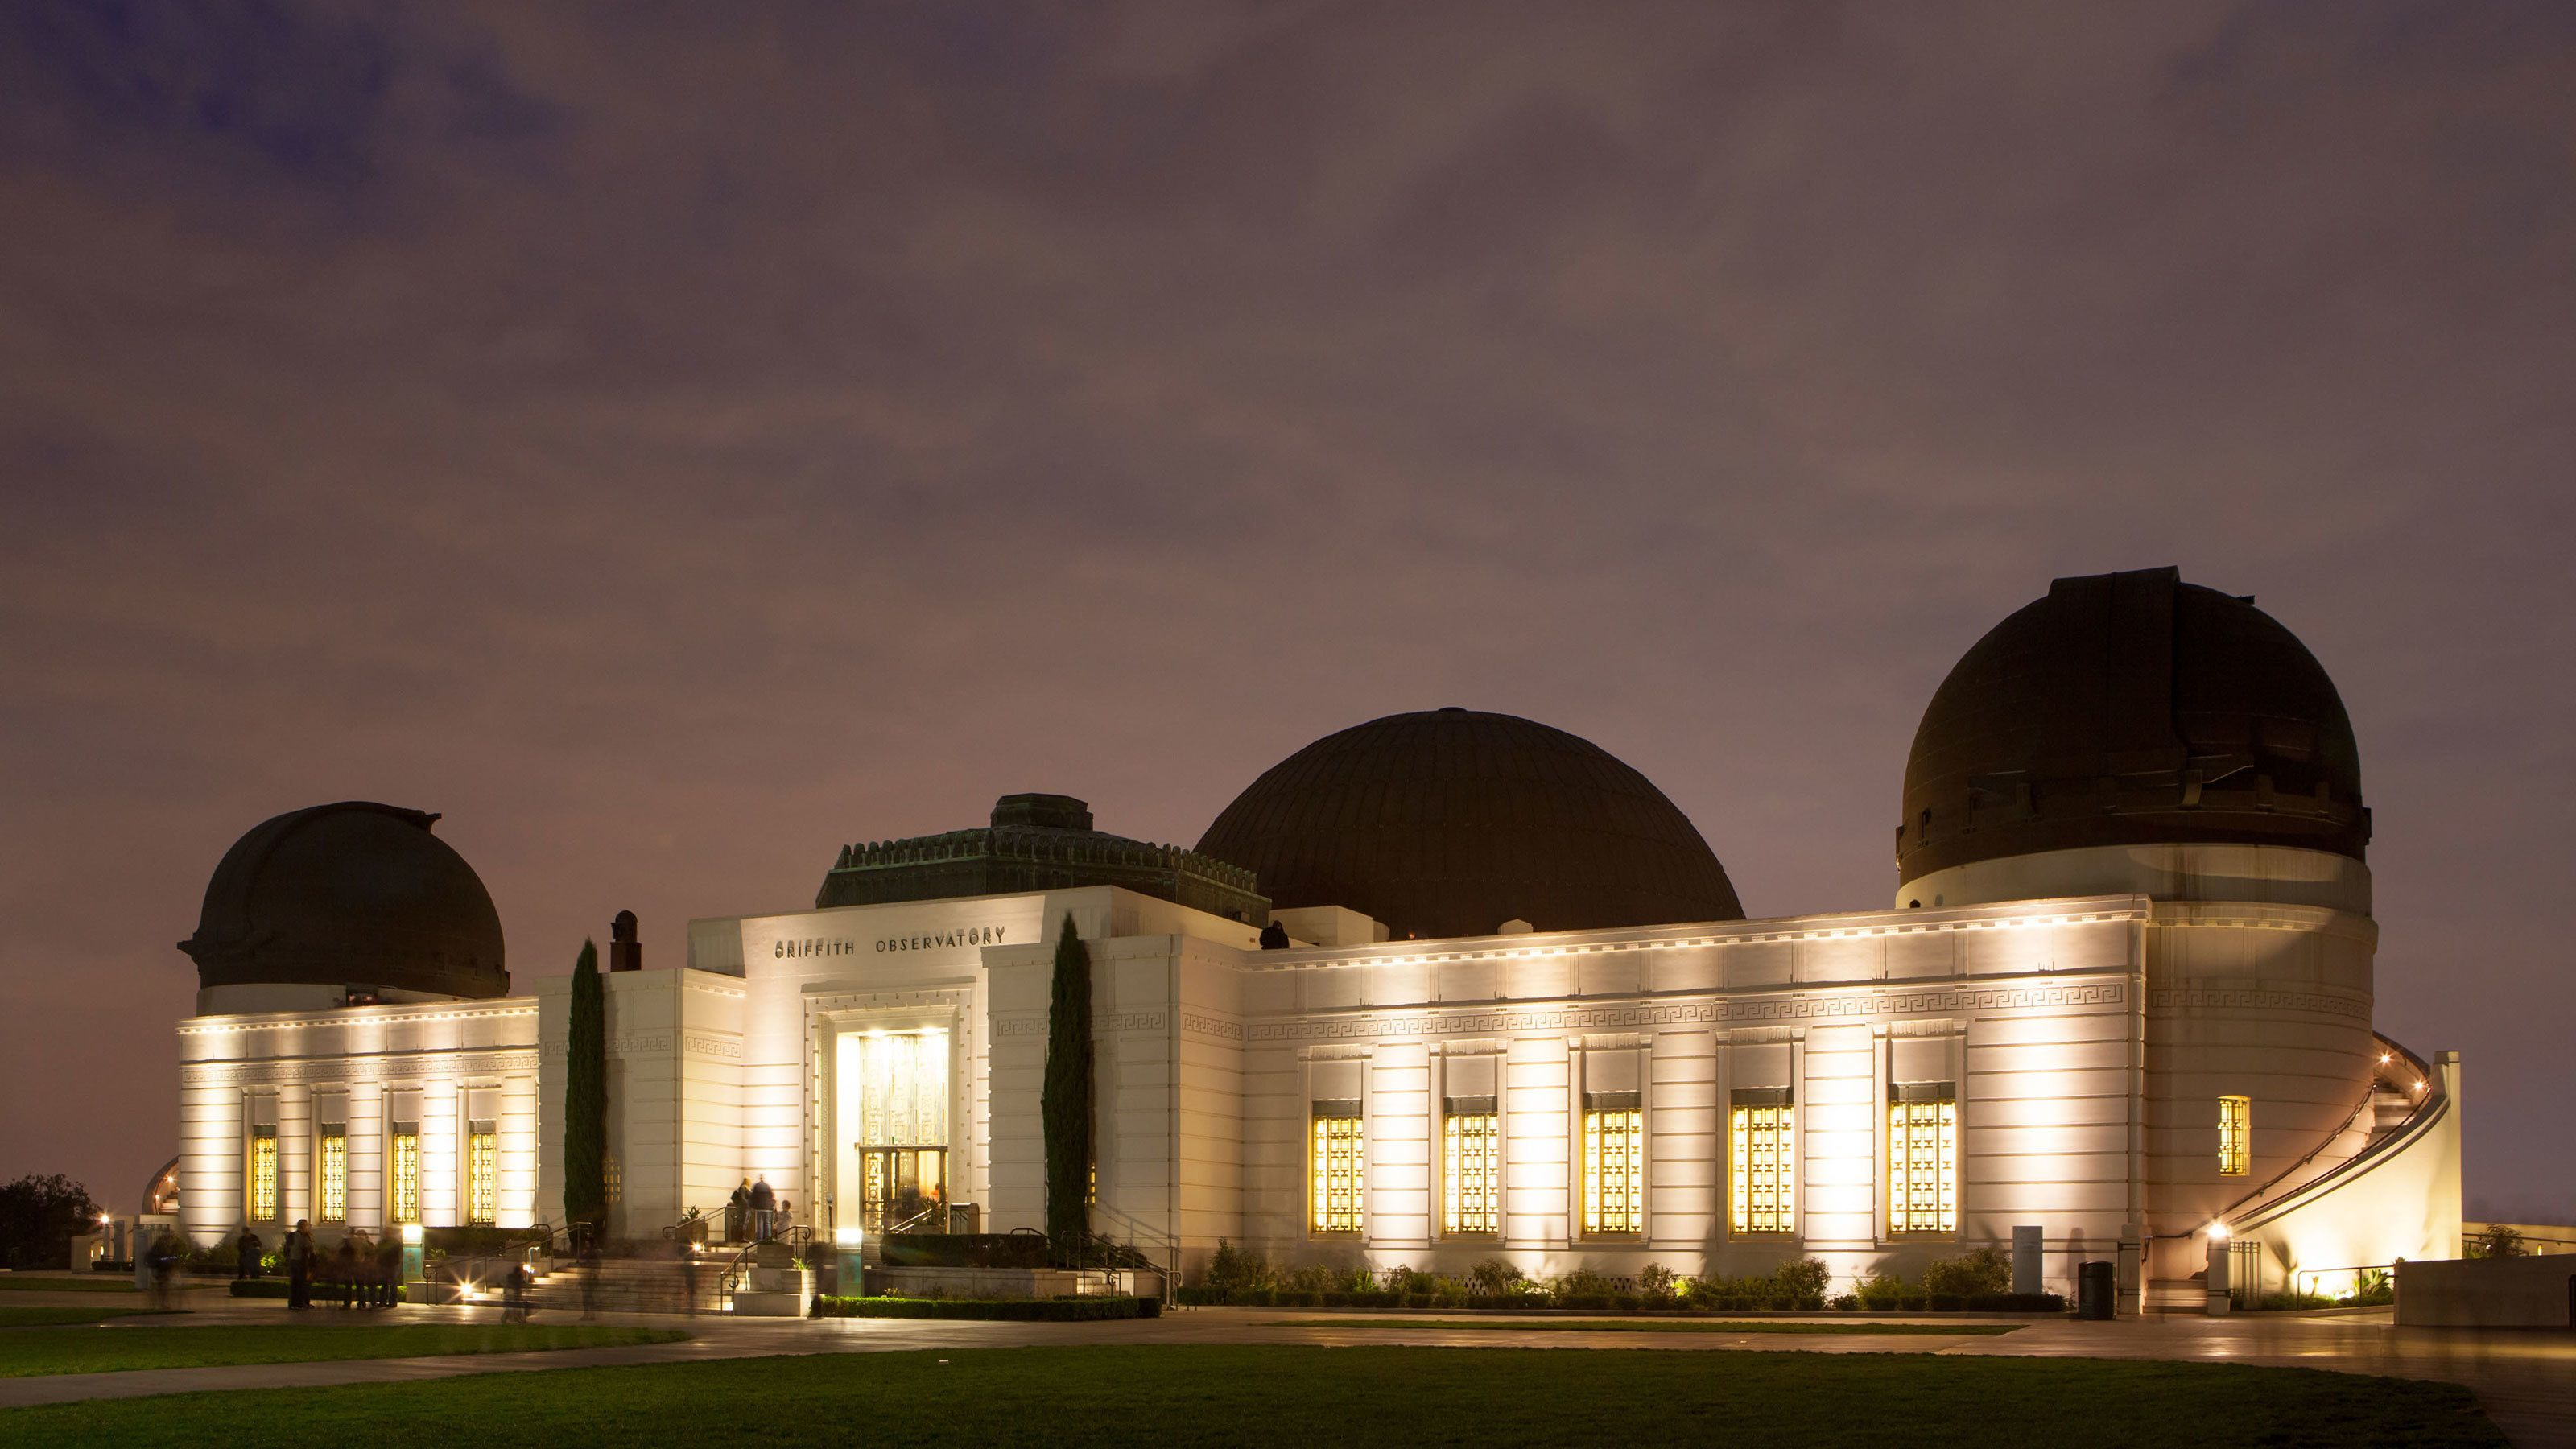 The Griffith Observatory at night in Los Angeles